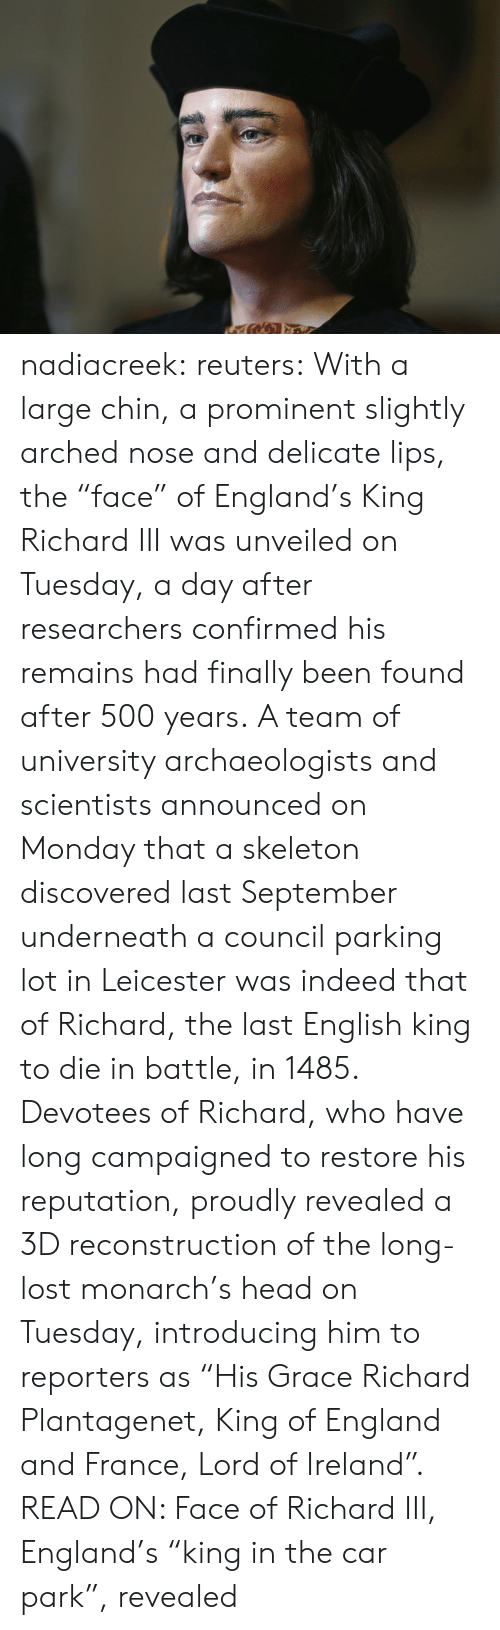 "reporters: nadiacreek: reuters:  With a large chin, a prominent slightly arched nose and delicate lips, the ""face"" of England's King Richard III was unveiled on Tuesday, a day after researchers confirmed his remains had finally been found after 500 years. A team of university archaeologists and scientists announced on Monday that a skeleton discovered last September underneath a council parking lot in Leicester was indeed that of Richard, the last English king to die in battle, in 1485. Devotees of Richard, who have long campaigned to restore his reputation, proudly revealed a 3D reconstruction of the long-lost monarch's head on Tuesday, introducing him to reporters as ""His Grace Richard Plantagenet, King of England and France, Lord of Ireland"". READ ON: Face of Richard III, England's ""king in the car park"", revealed"